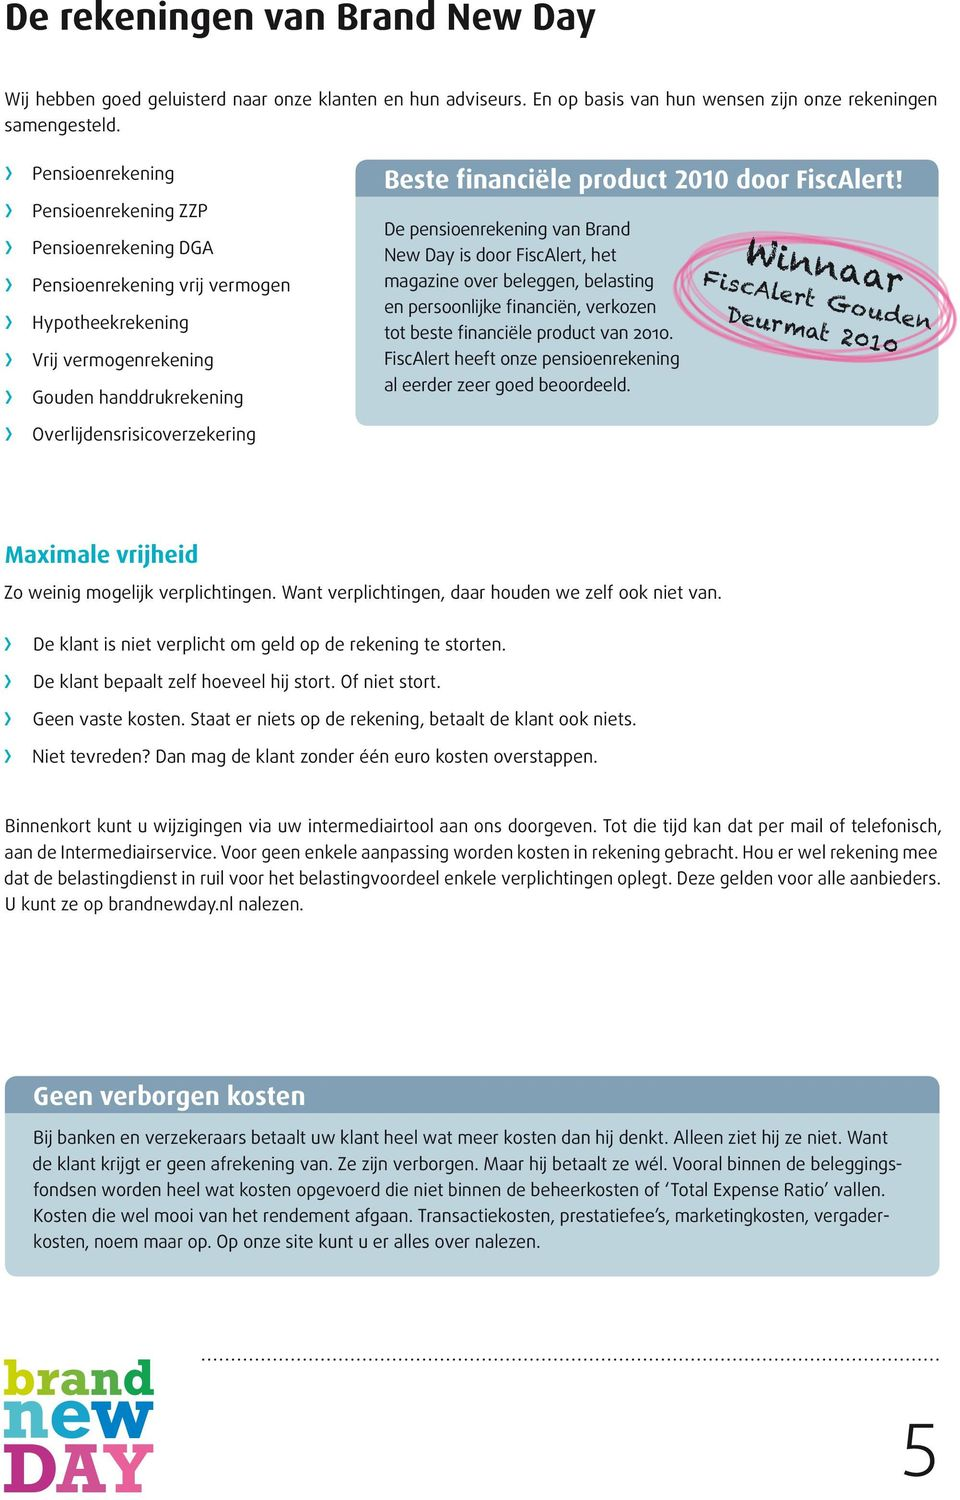 door FiscAlert! De pensioenrekening van Brand New Day is door FiscAlert, het magazine over beleggen, belasting en persoonlijke financiën, verkozen tot beste financiële product van 2010.